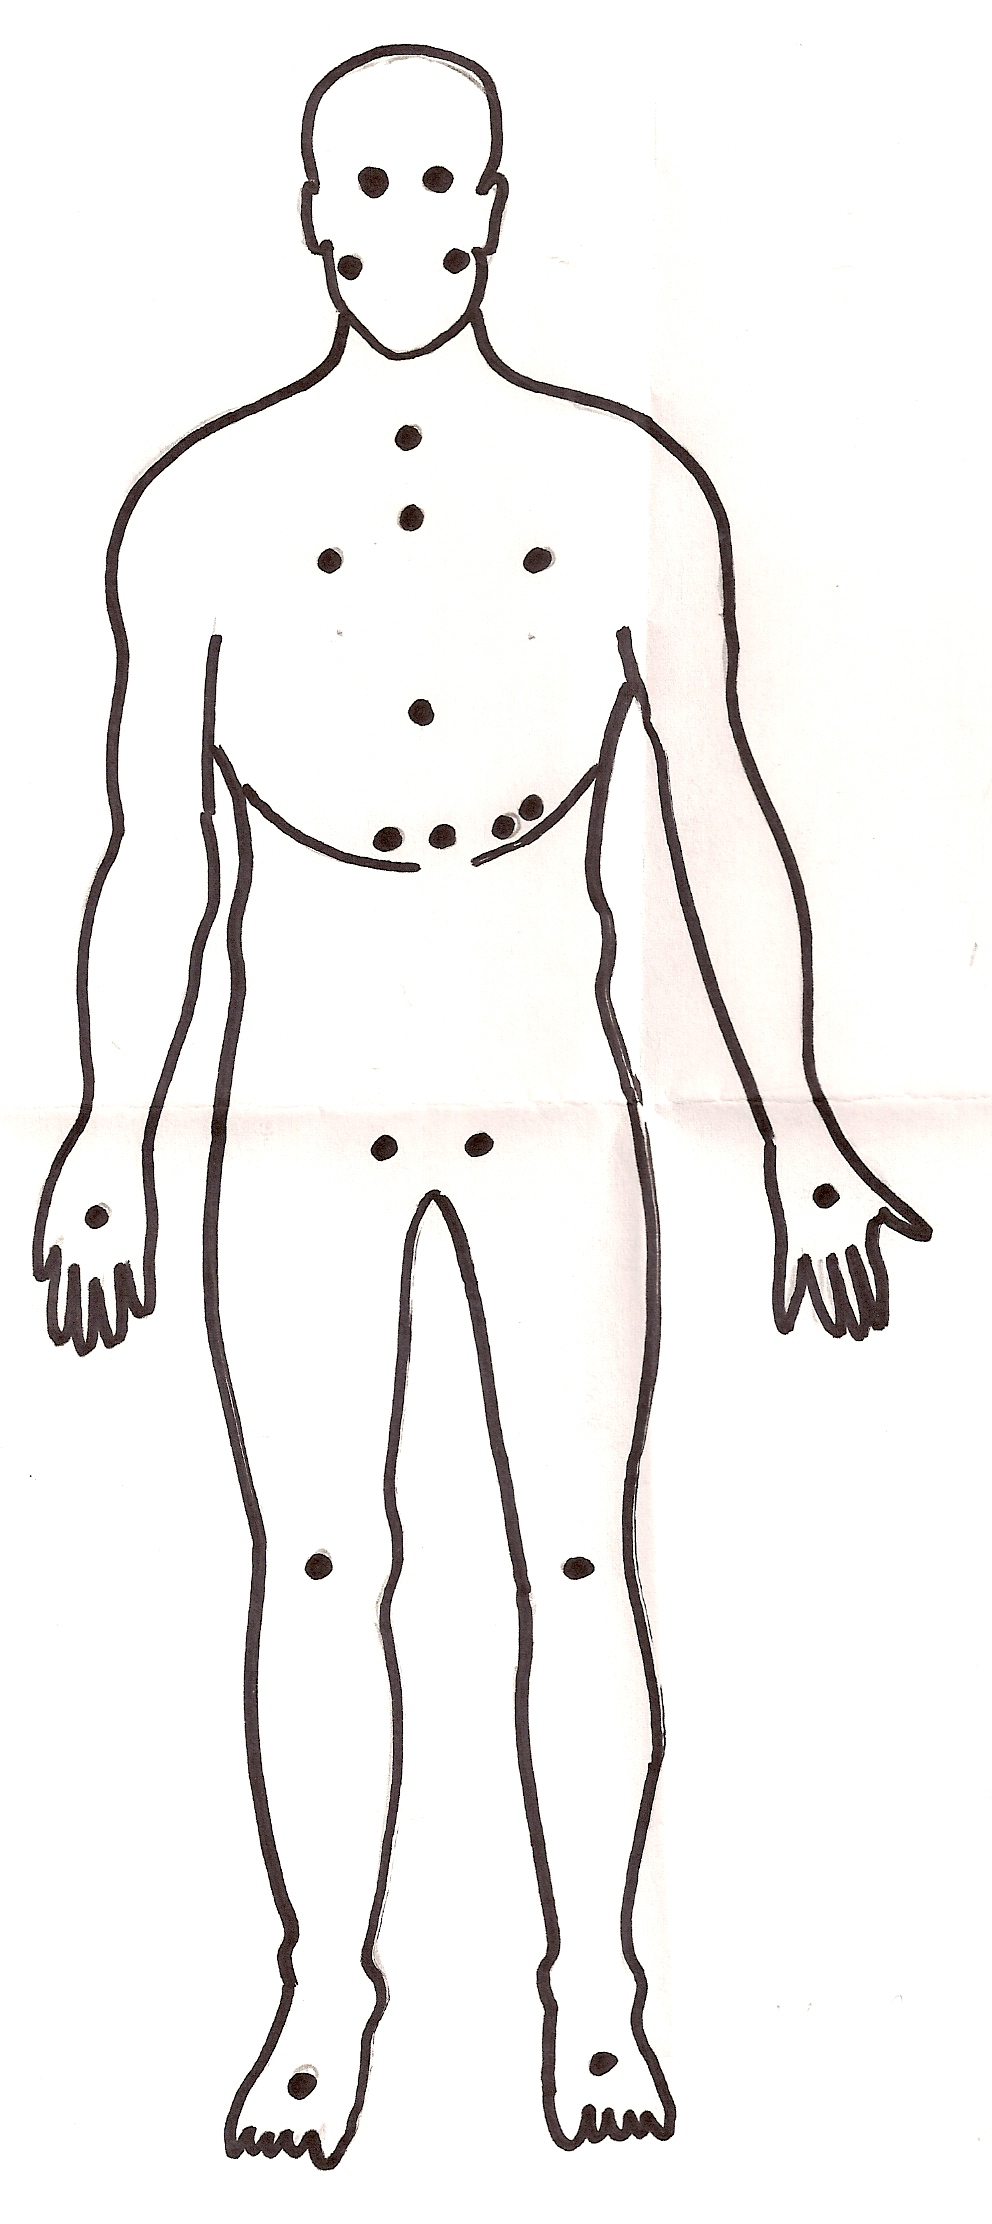 Subtle Anatomy, description of the chakras (with images) of man